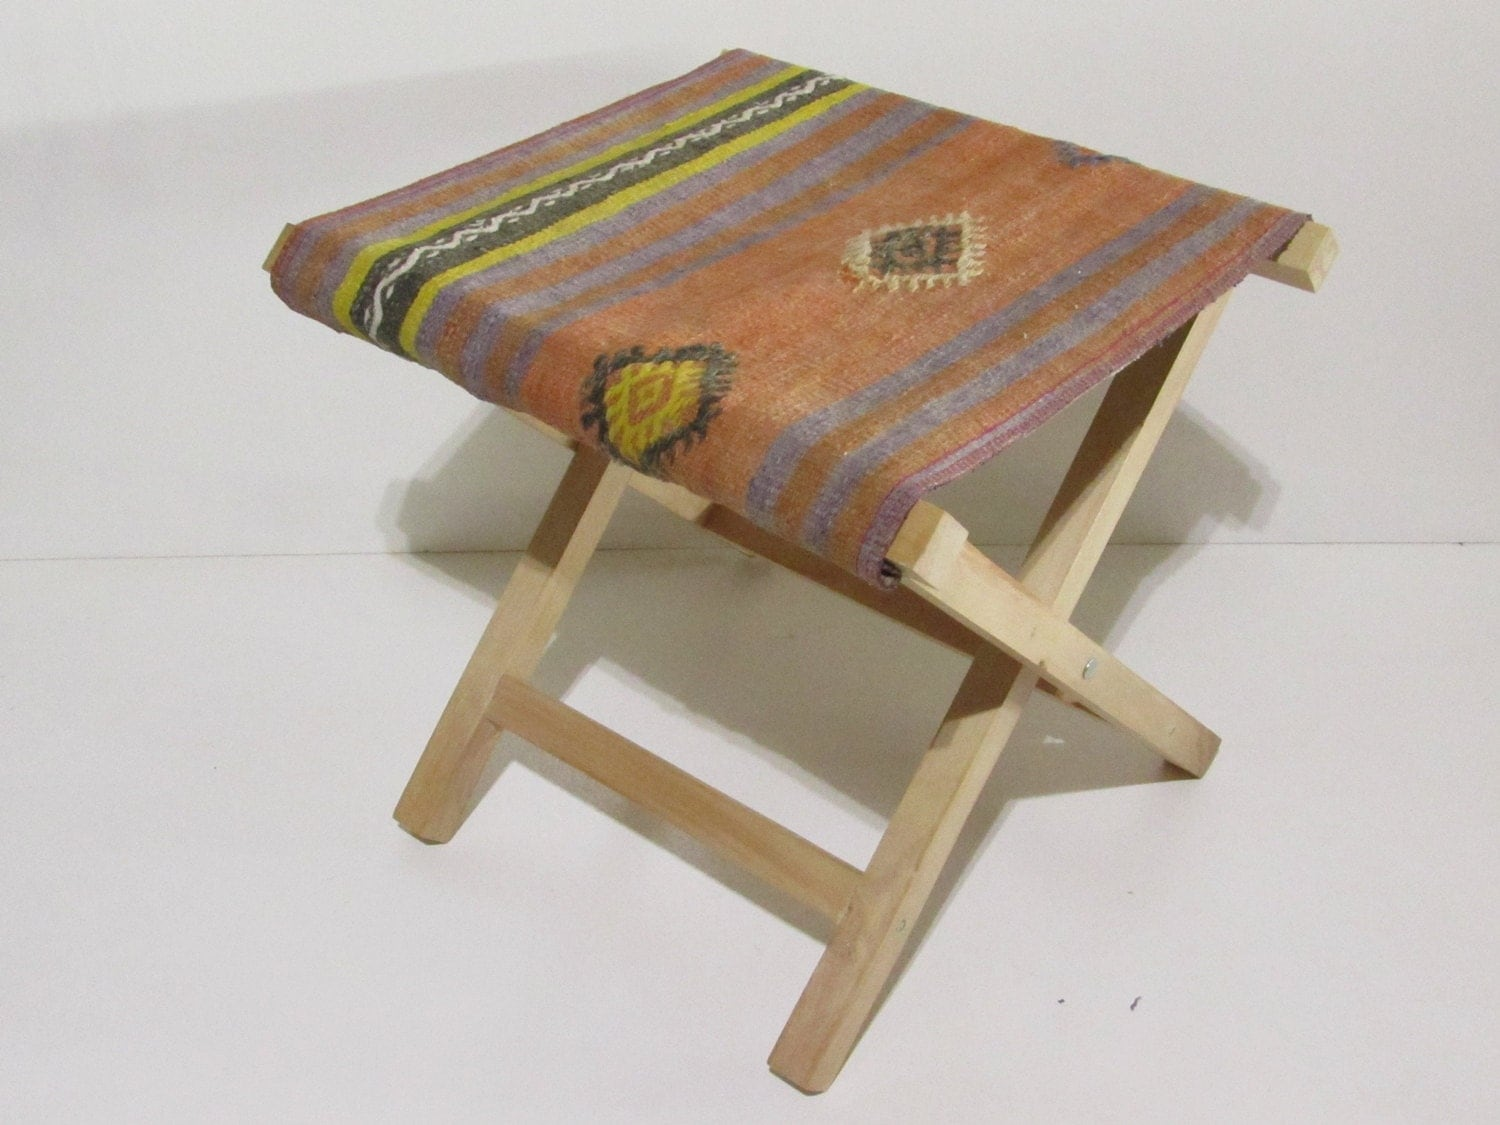 Aztec Chair Kilim Stool Rustic Decor Kilim Chair Aztec Furniture Kilim